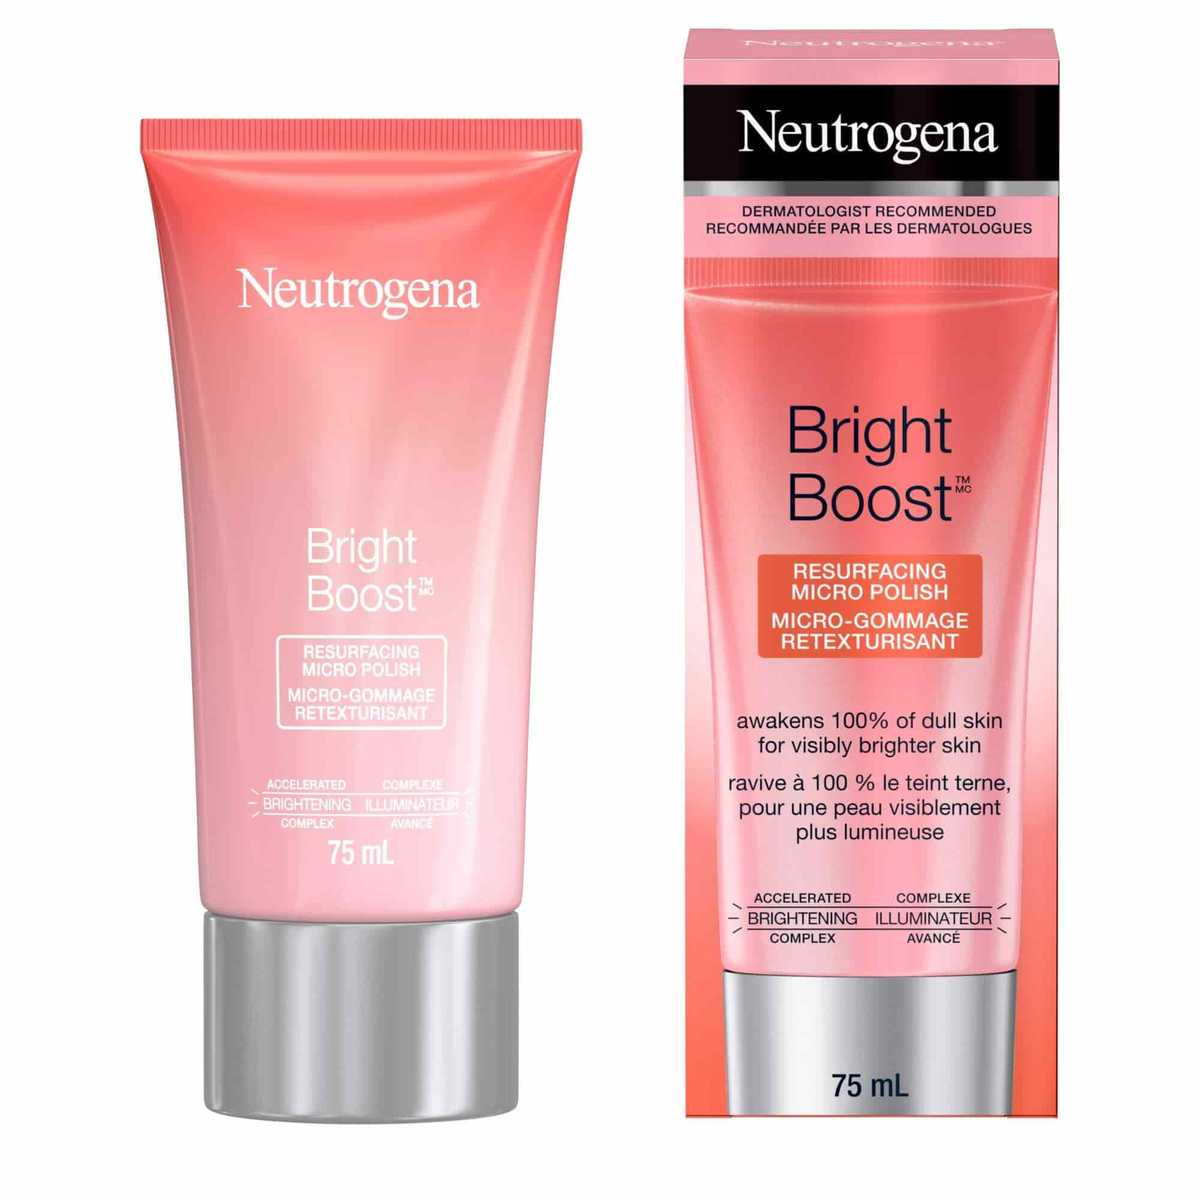 Resurfacing Micro Polish Neutrogena Bright Boost